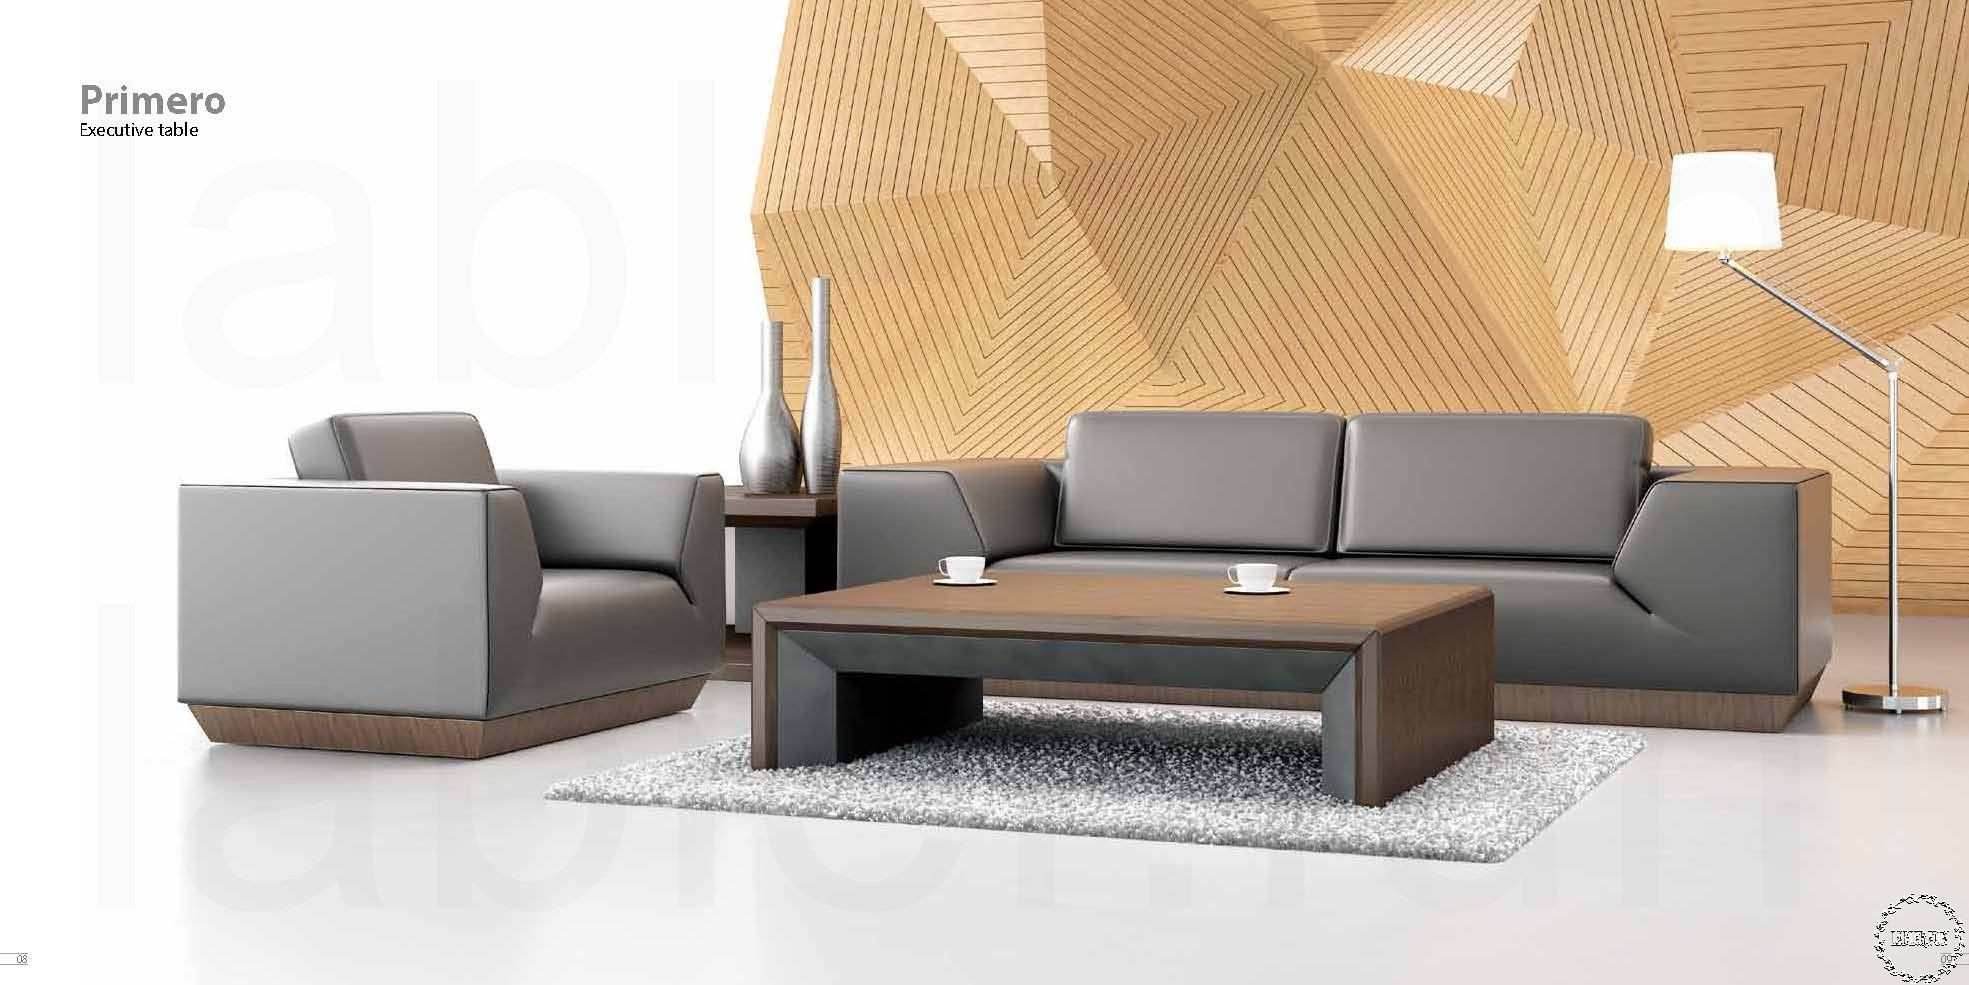 Home Furniture Design Software Free Download Office Sofa Design Furniture Design Furniture Design Software